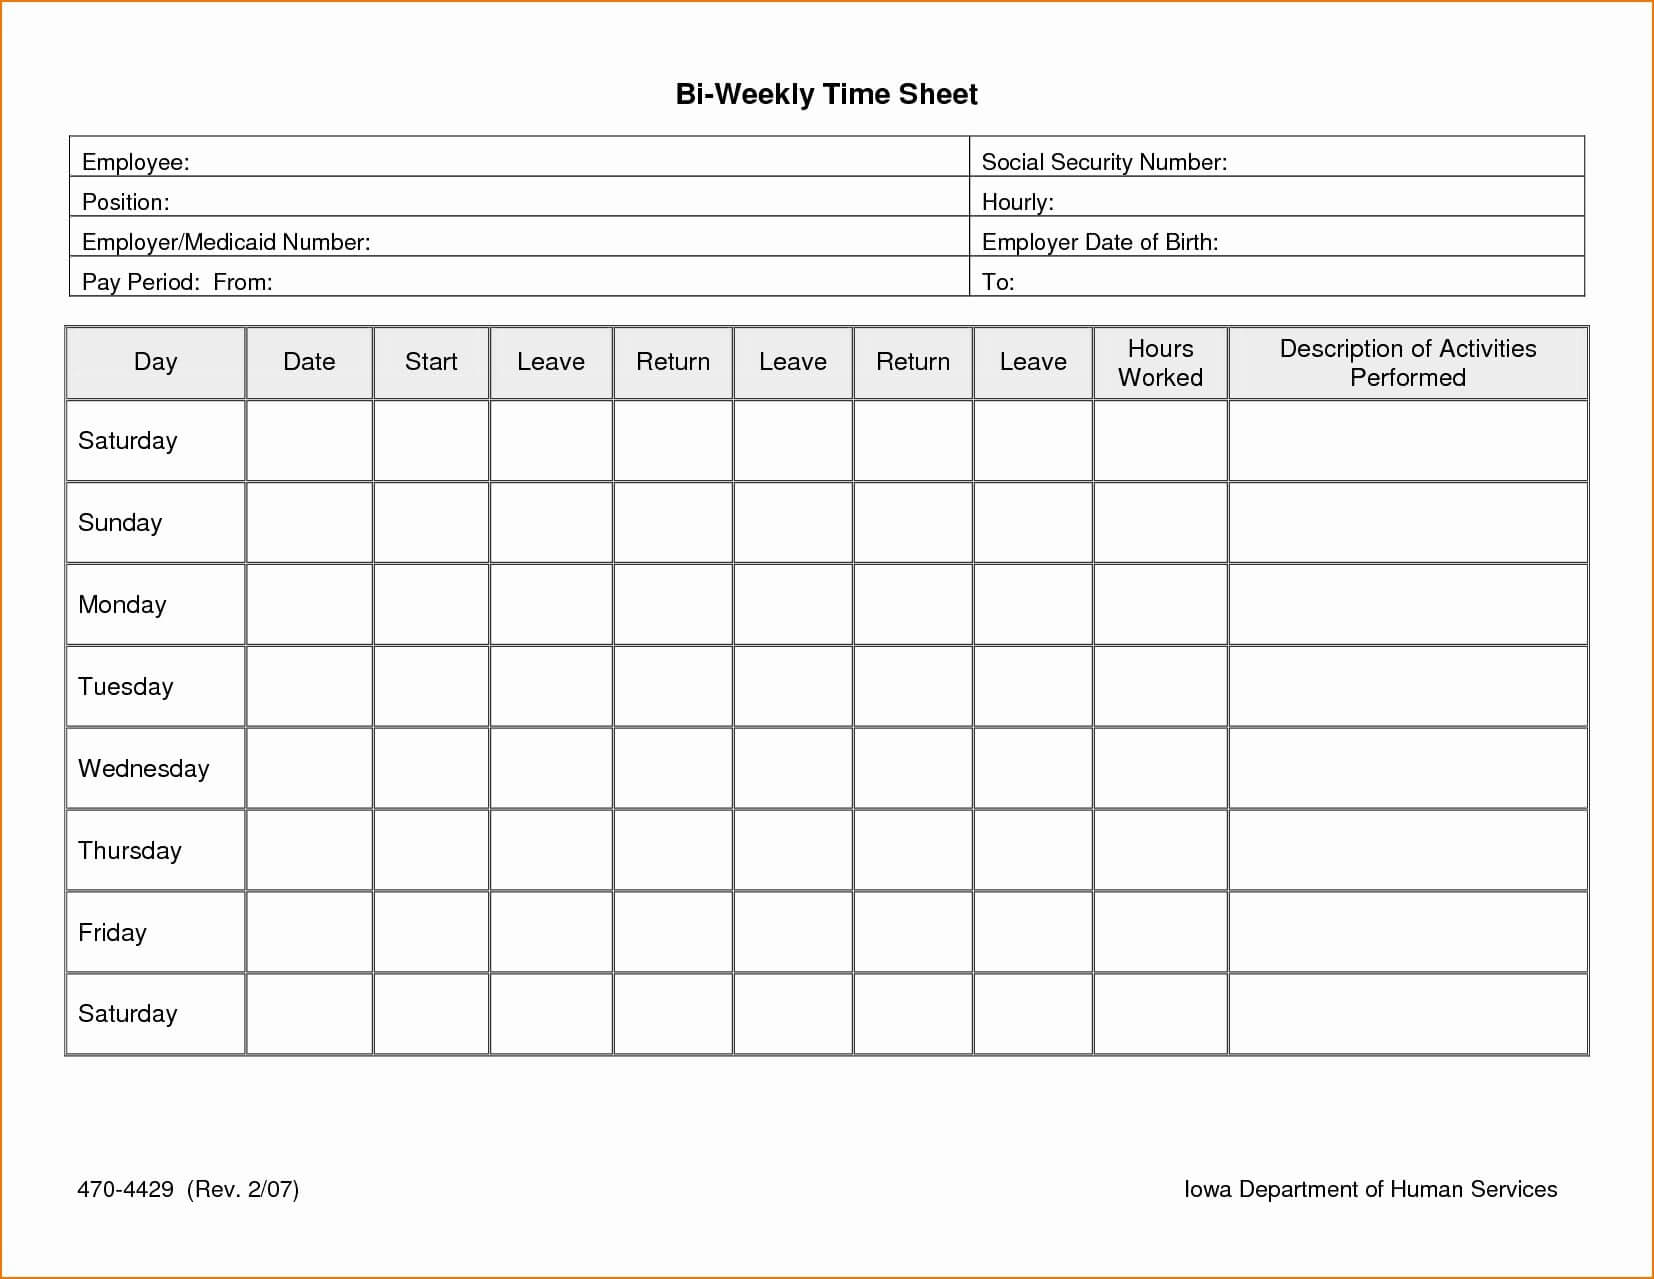 009 Time Card Template Free Excel 1654X1279 Incredible Ideas Regarding Weekly Time Card Template Free